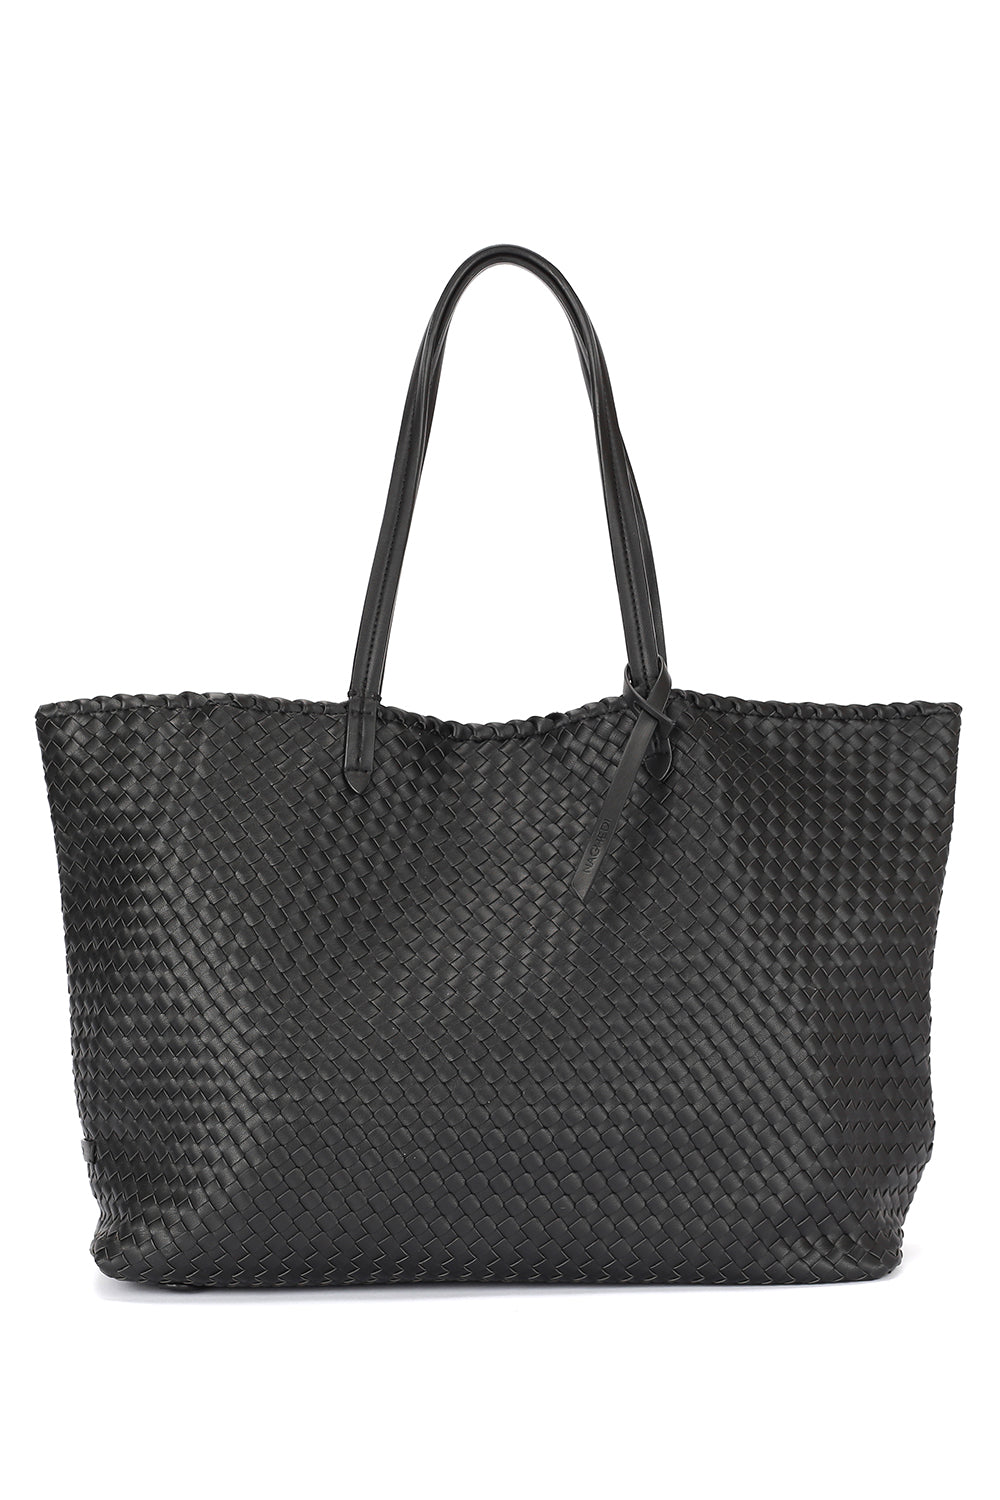 Cannes Small Tote Bag in Onyx